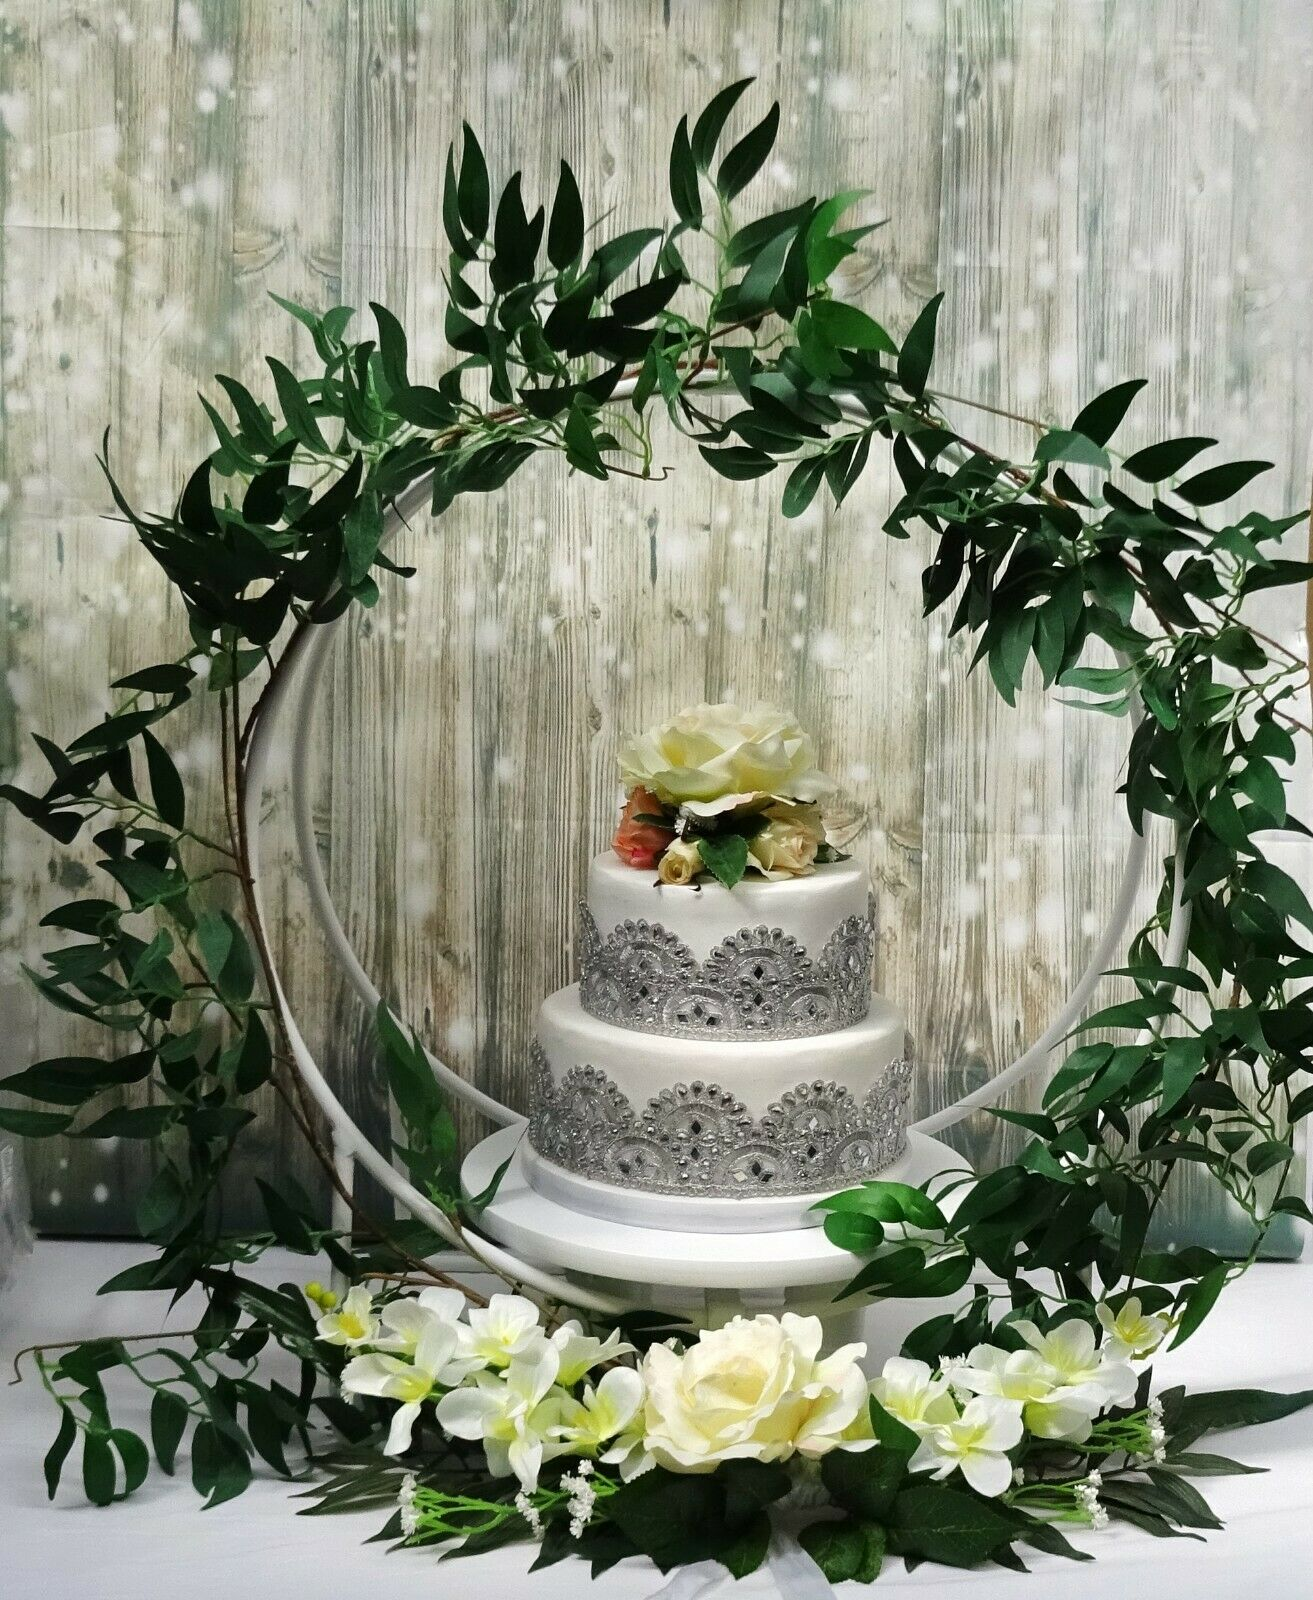 Small Hoop wedding cake stand-Blanc-En bois Hoop + Métal Support